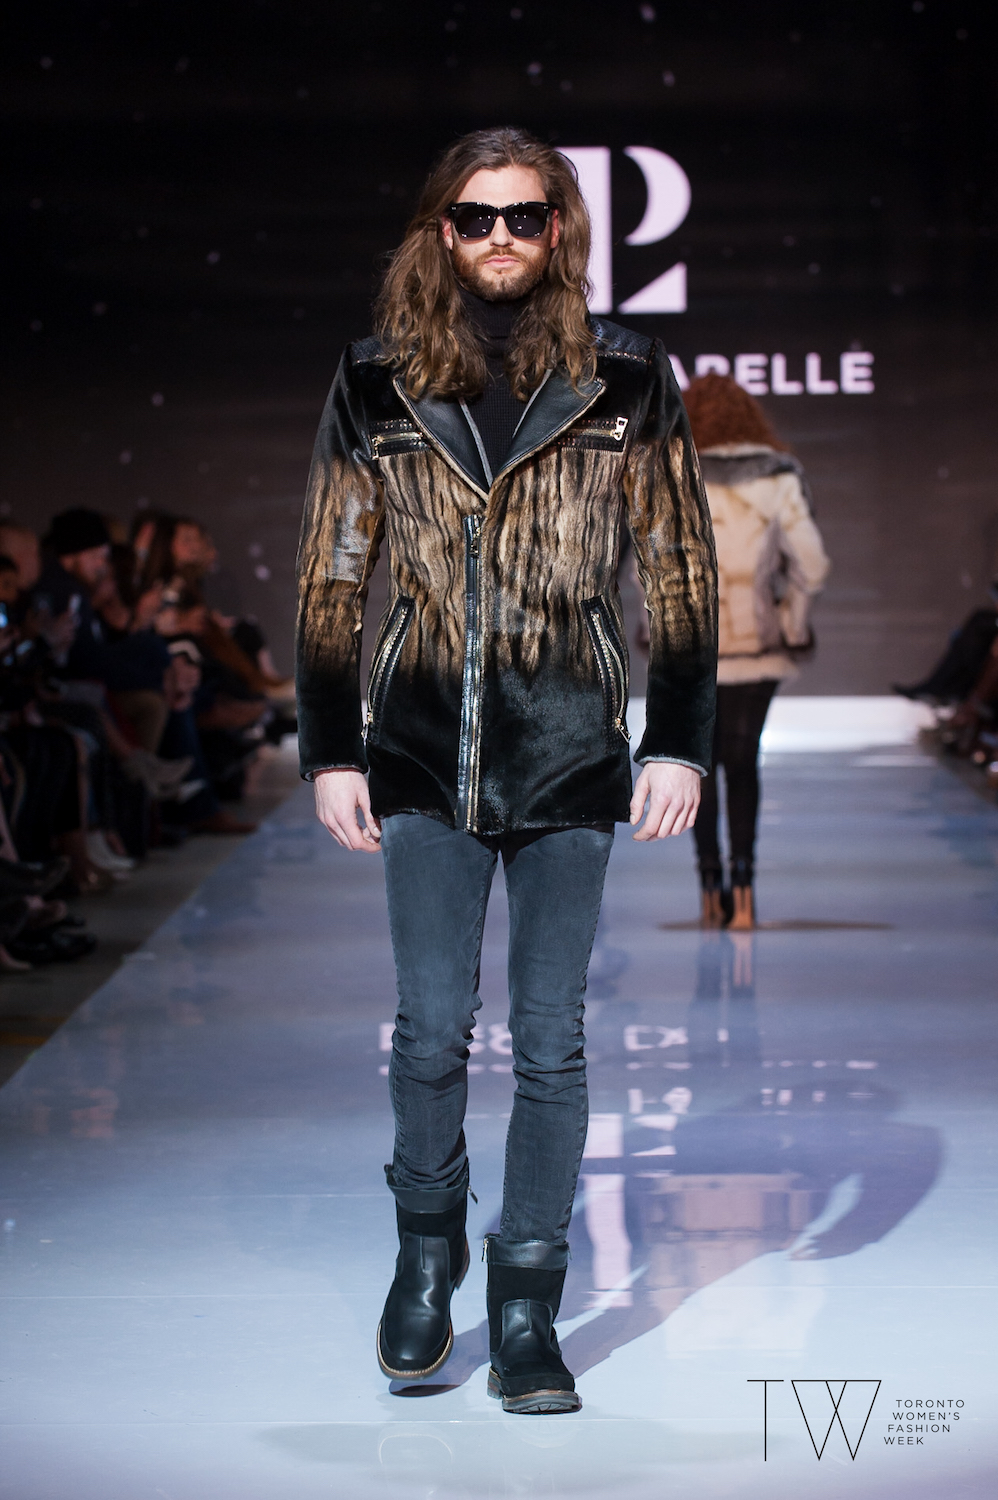 cffc5-pascal_labelle-twfw-toronto-womens-fashion-week-photo-credit-che-rosales-mens-look-2.jpg